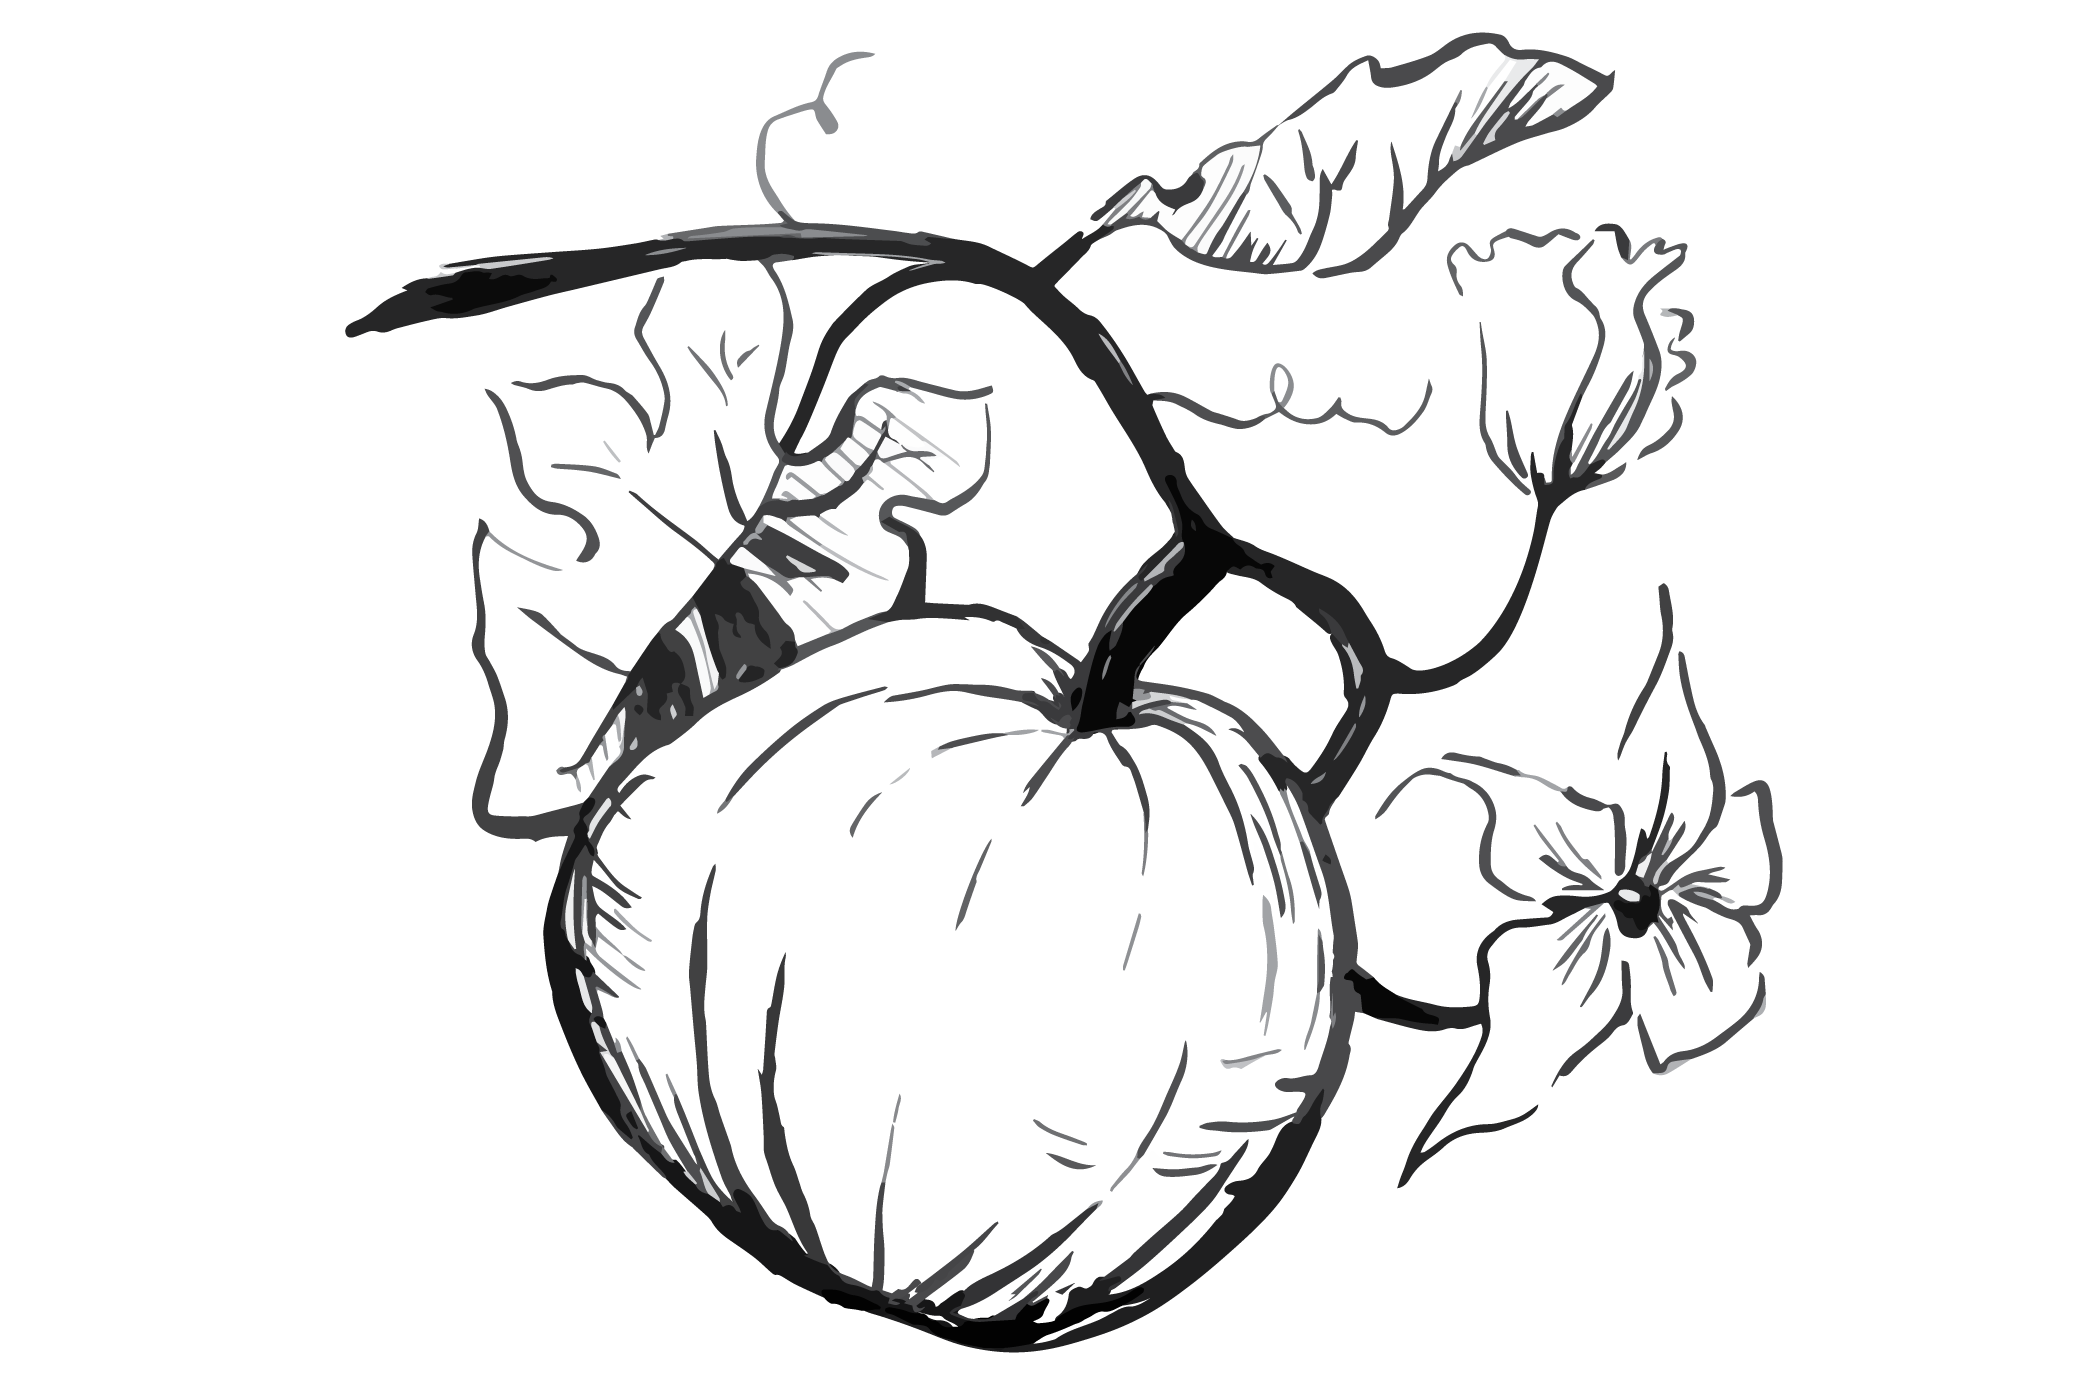 Pumpkin vine black and white clipart graphic royalty free download Pumpkin Seed Drawing at GetDrawings.com | Free for personal use ... graphic royalty free download